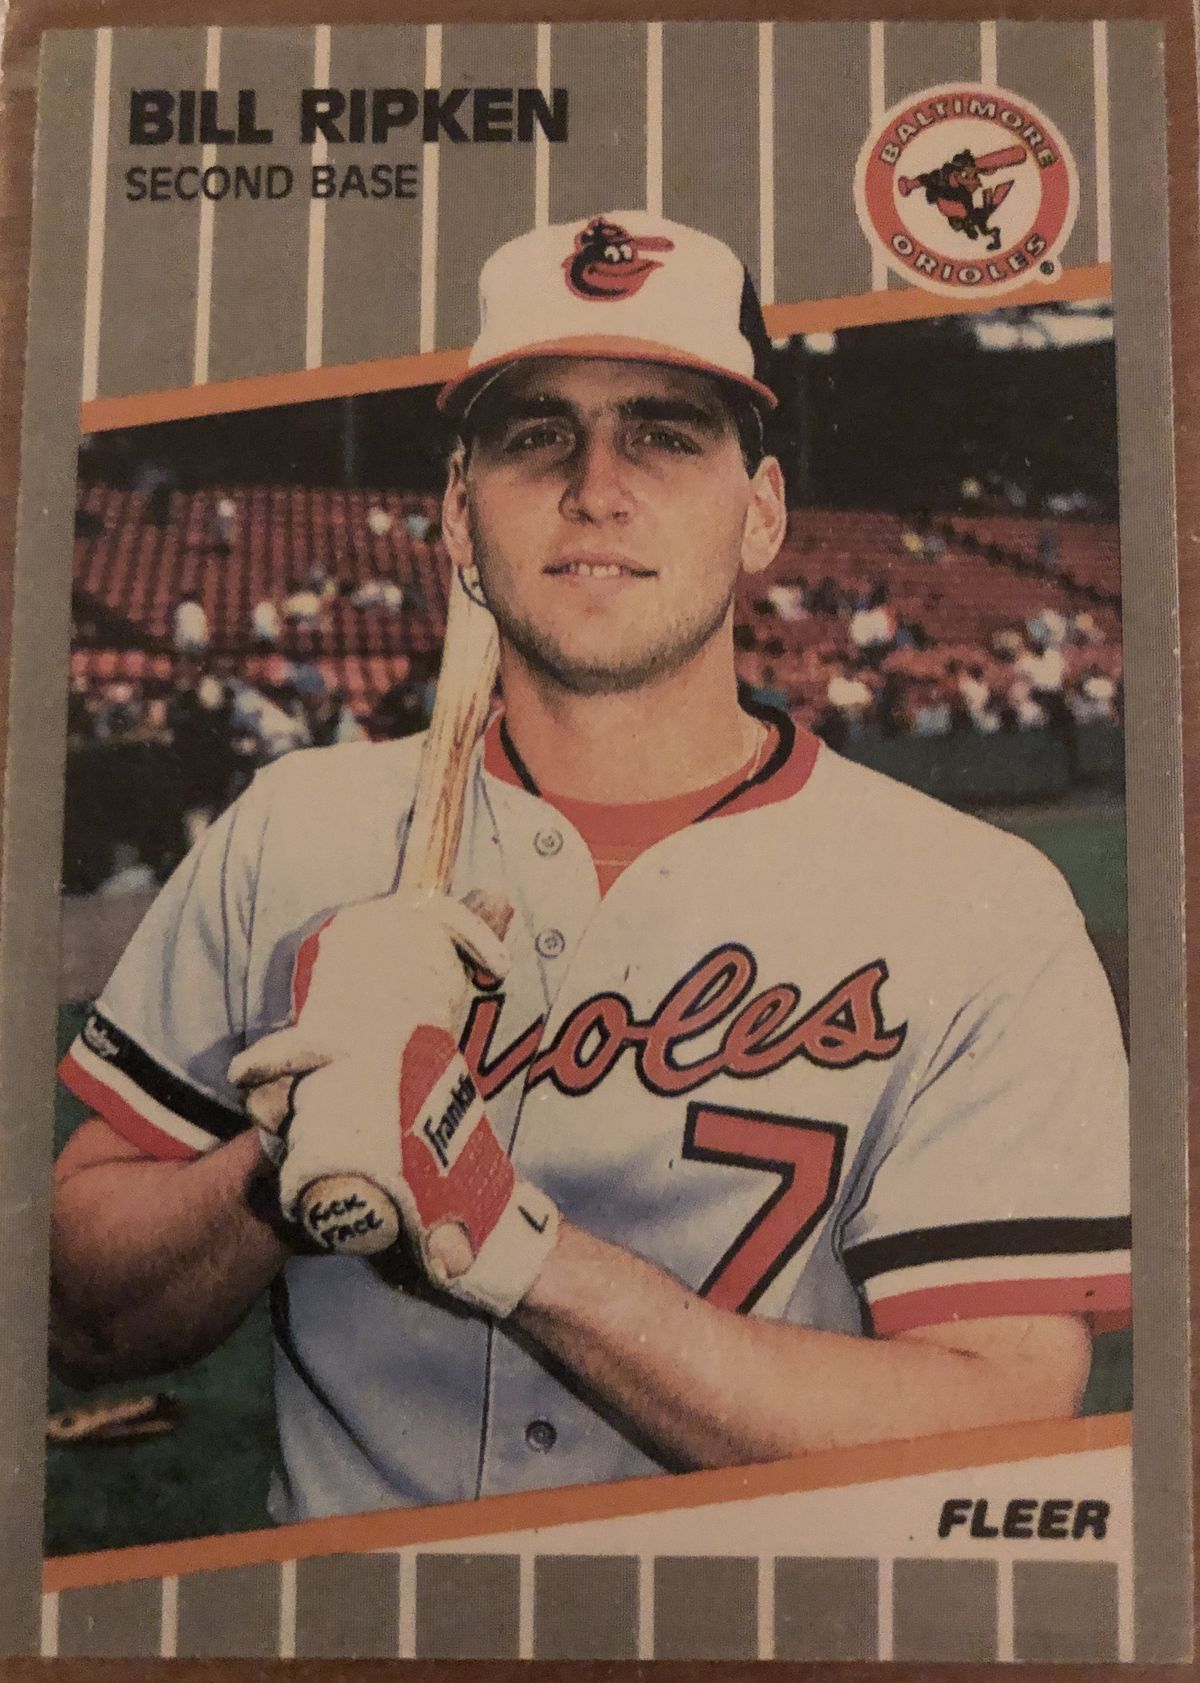 The 1989 Fleer Bill Ripken Card 30 Years Later Sbnationcom